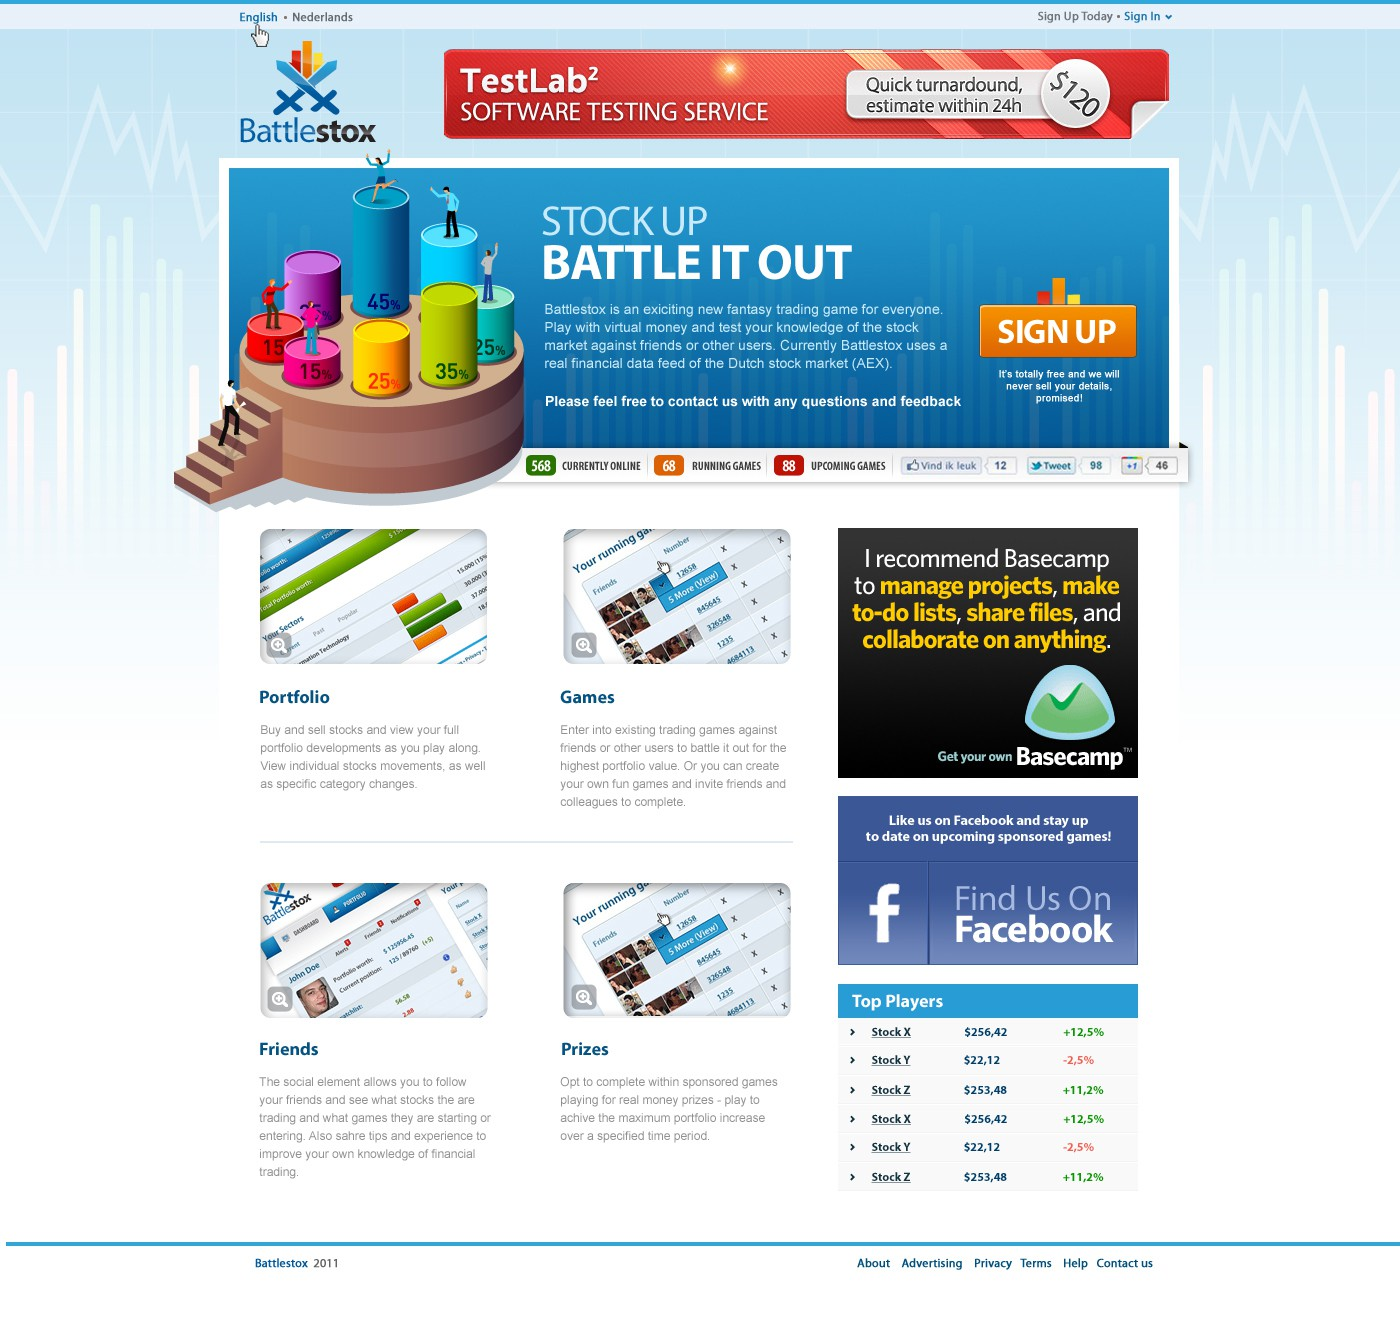 Battlestox is almost ready to launch